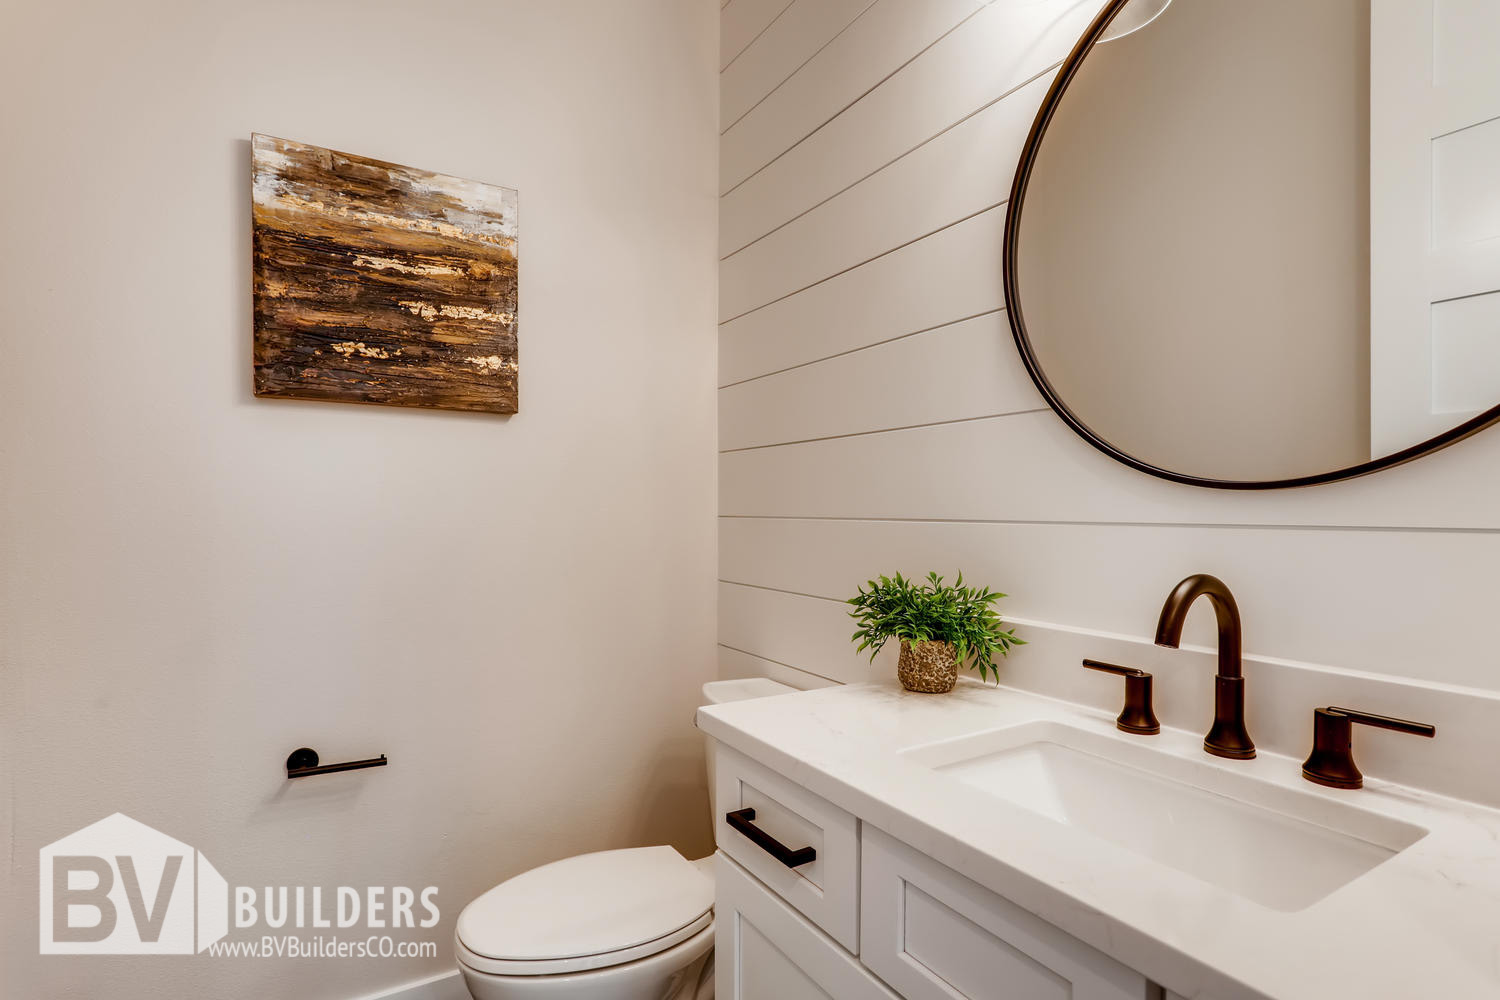 Powder room with shiplap wall and circular round mirror